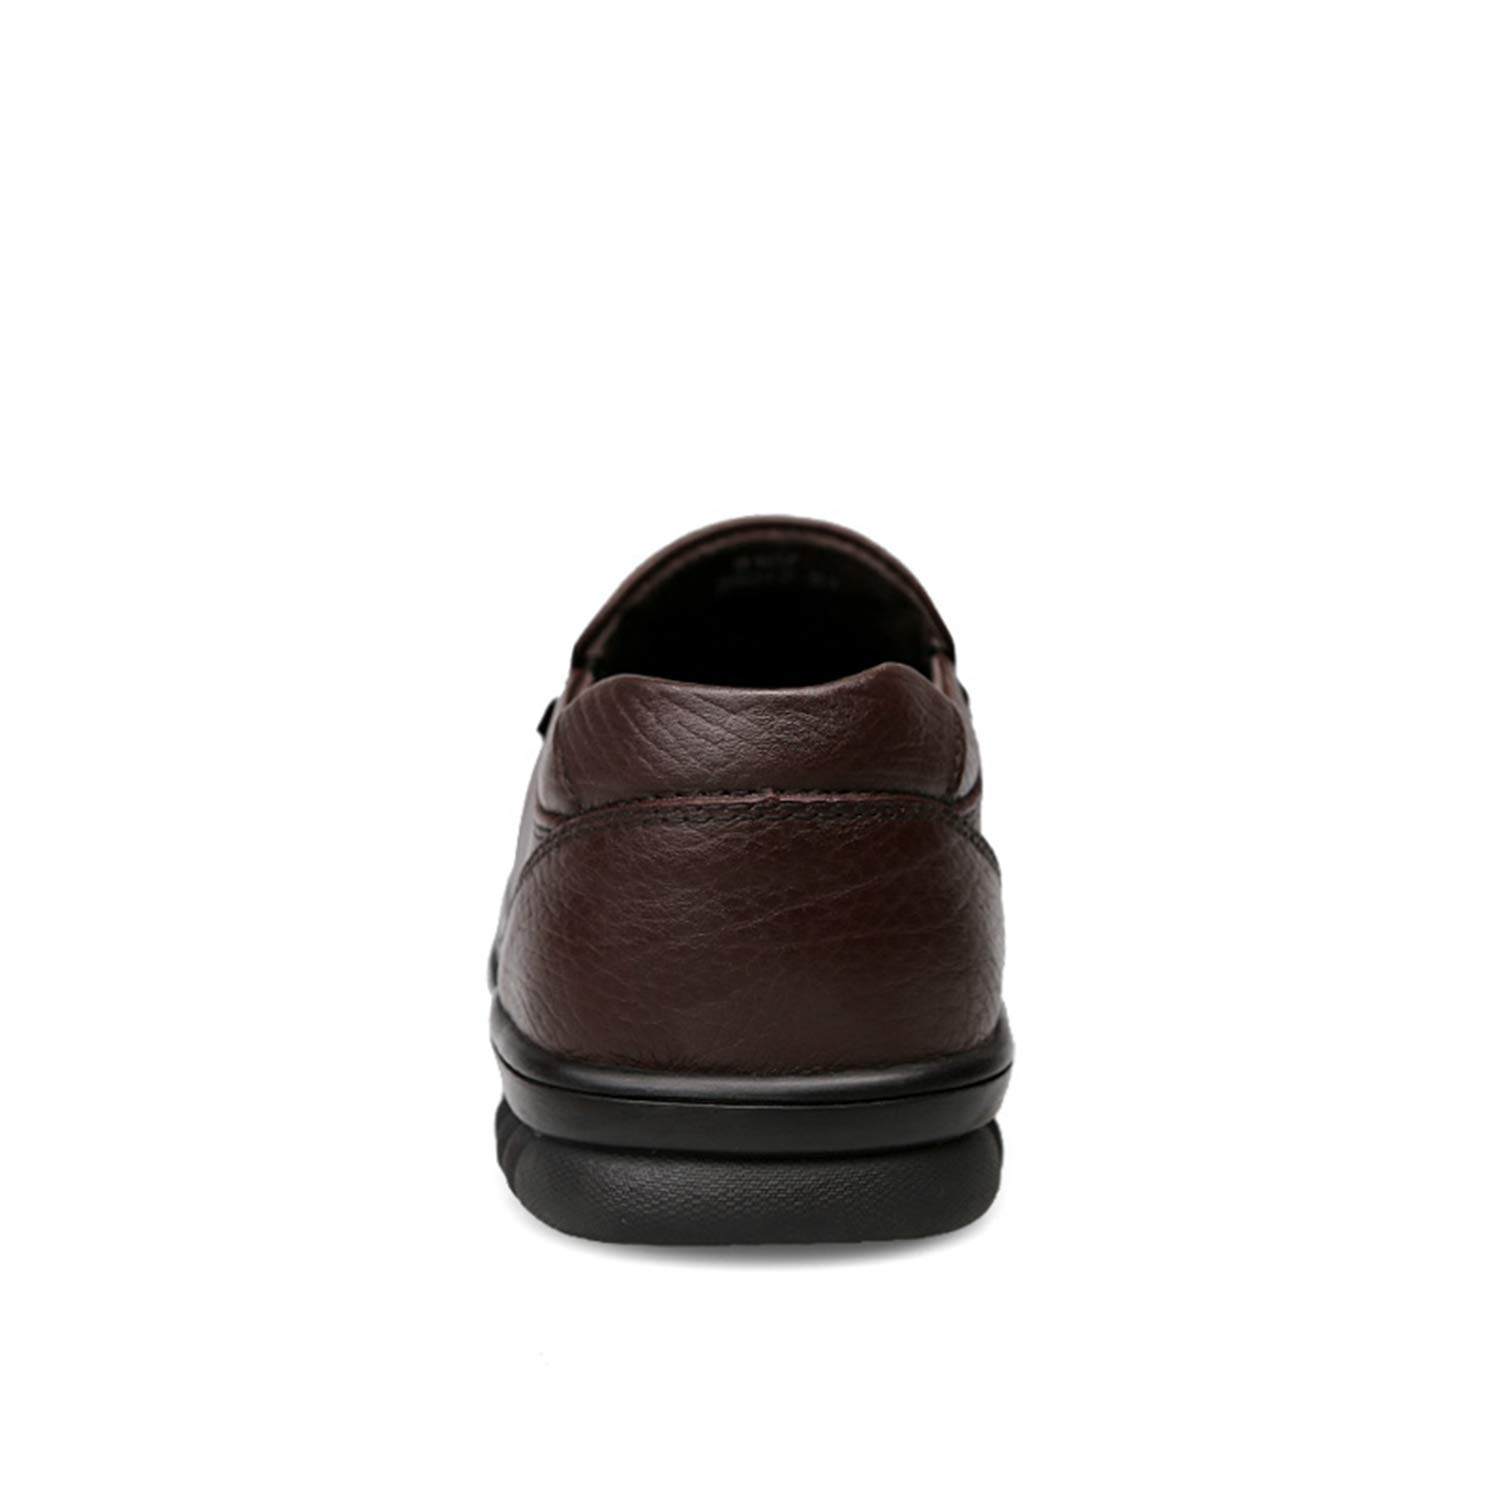 Genuine Leather Shoes Men Footwear Non-Slip Thick Sole Fashion Mens Casual Shoes Male Cowhide Loafers